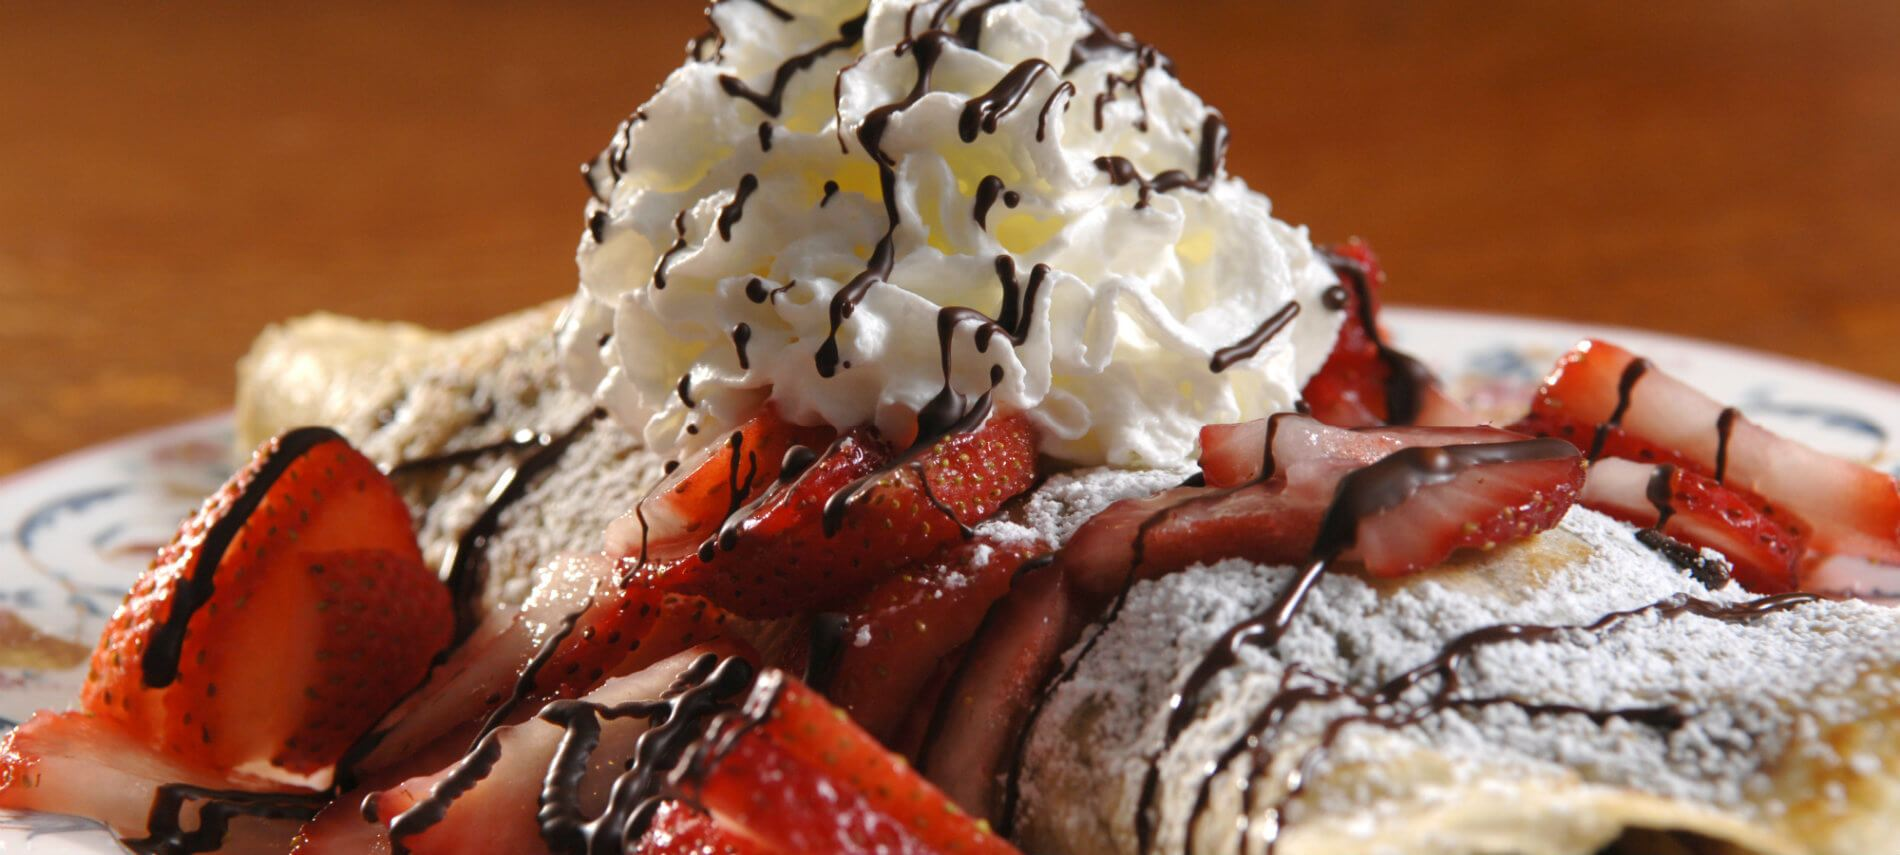 Delicious crepe topped with powdered sugar, whipped cream, fresh strawberries and drizzled in chocolate syrup